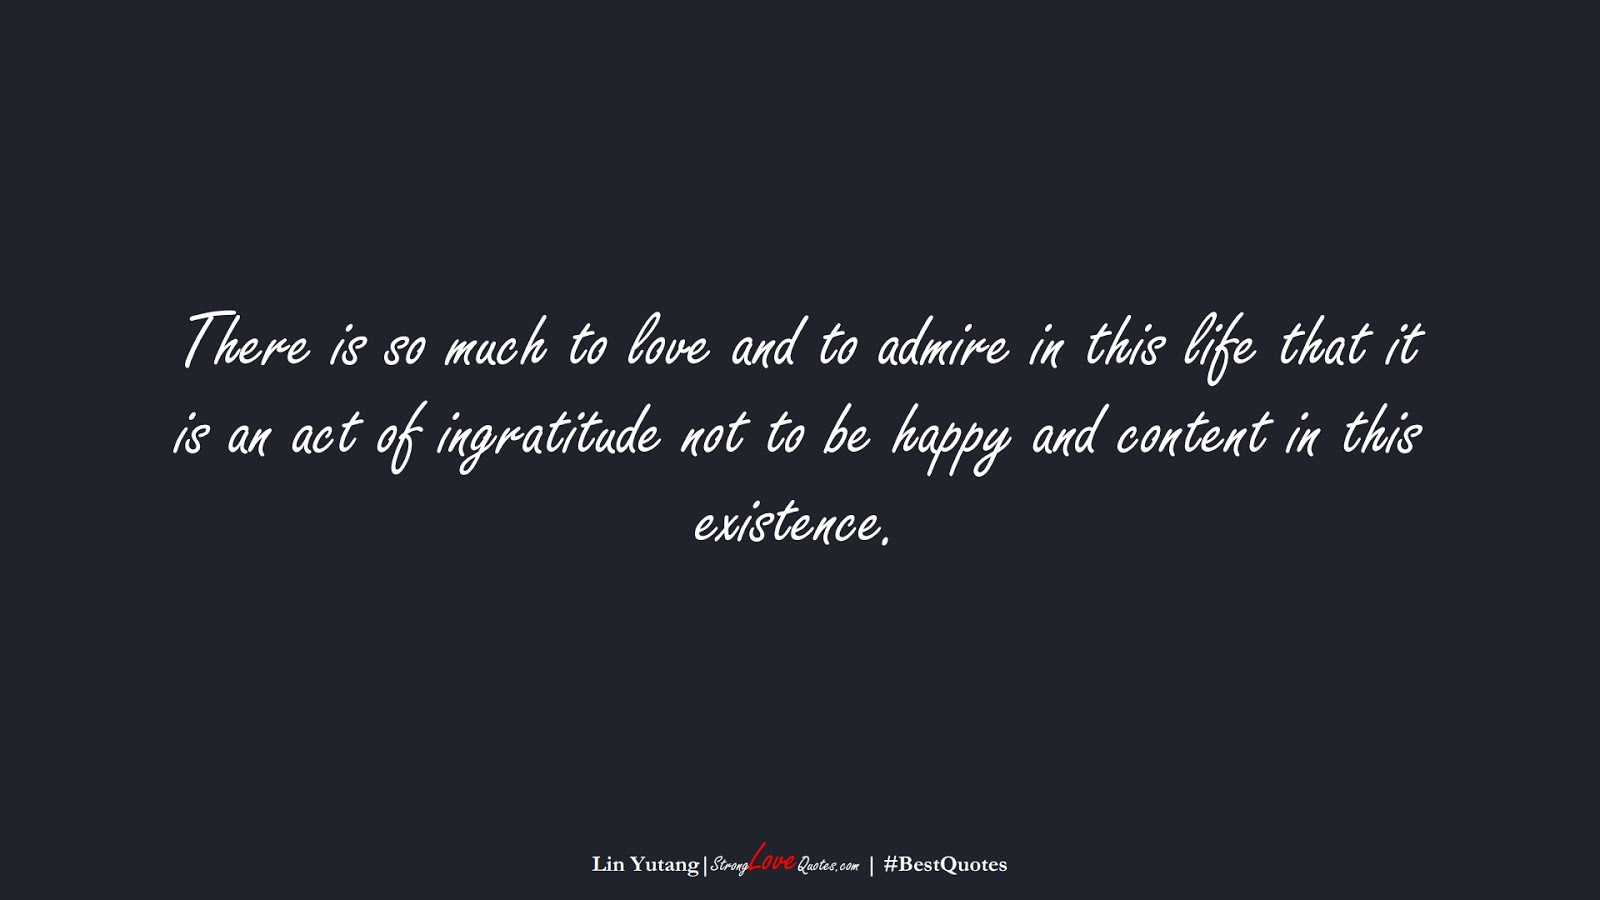 There is so much to love and to admire in this life that it is an act of ingratitude not to be happy and content in this existence. (Lin Yutang);  #BestQuotes